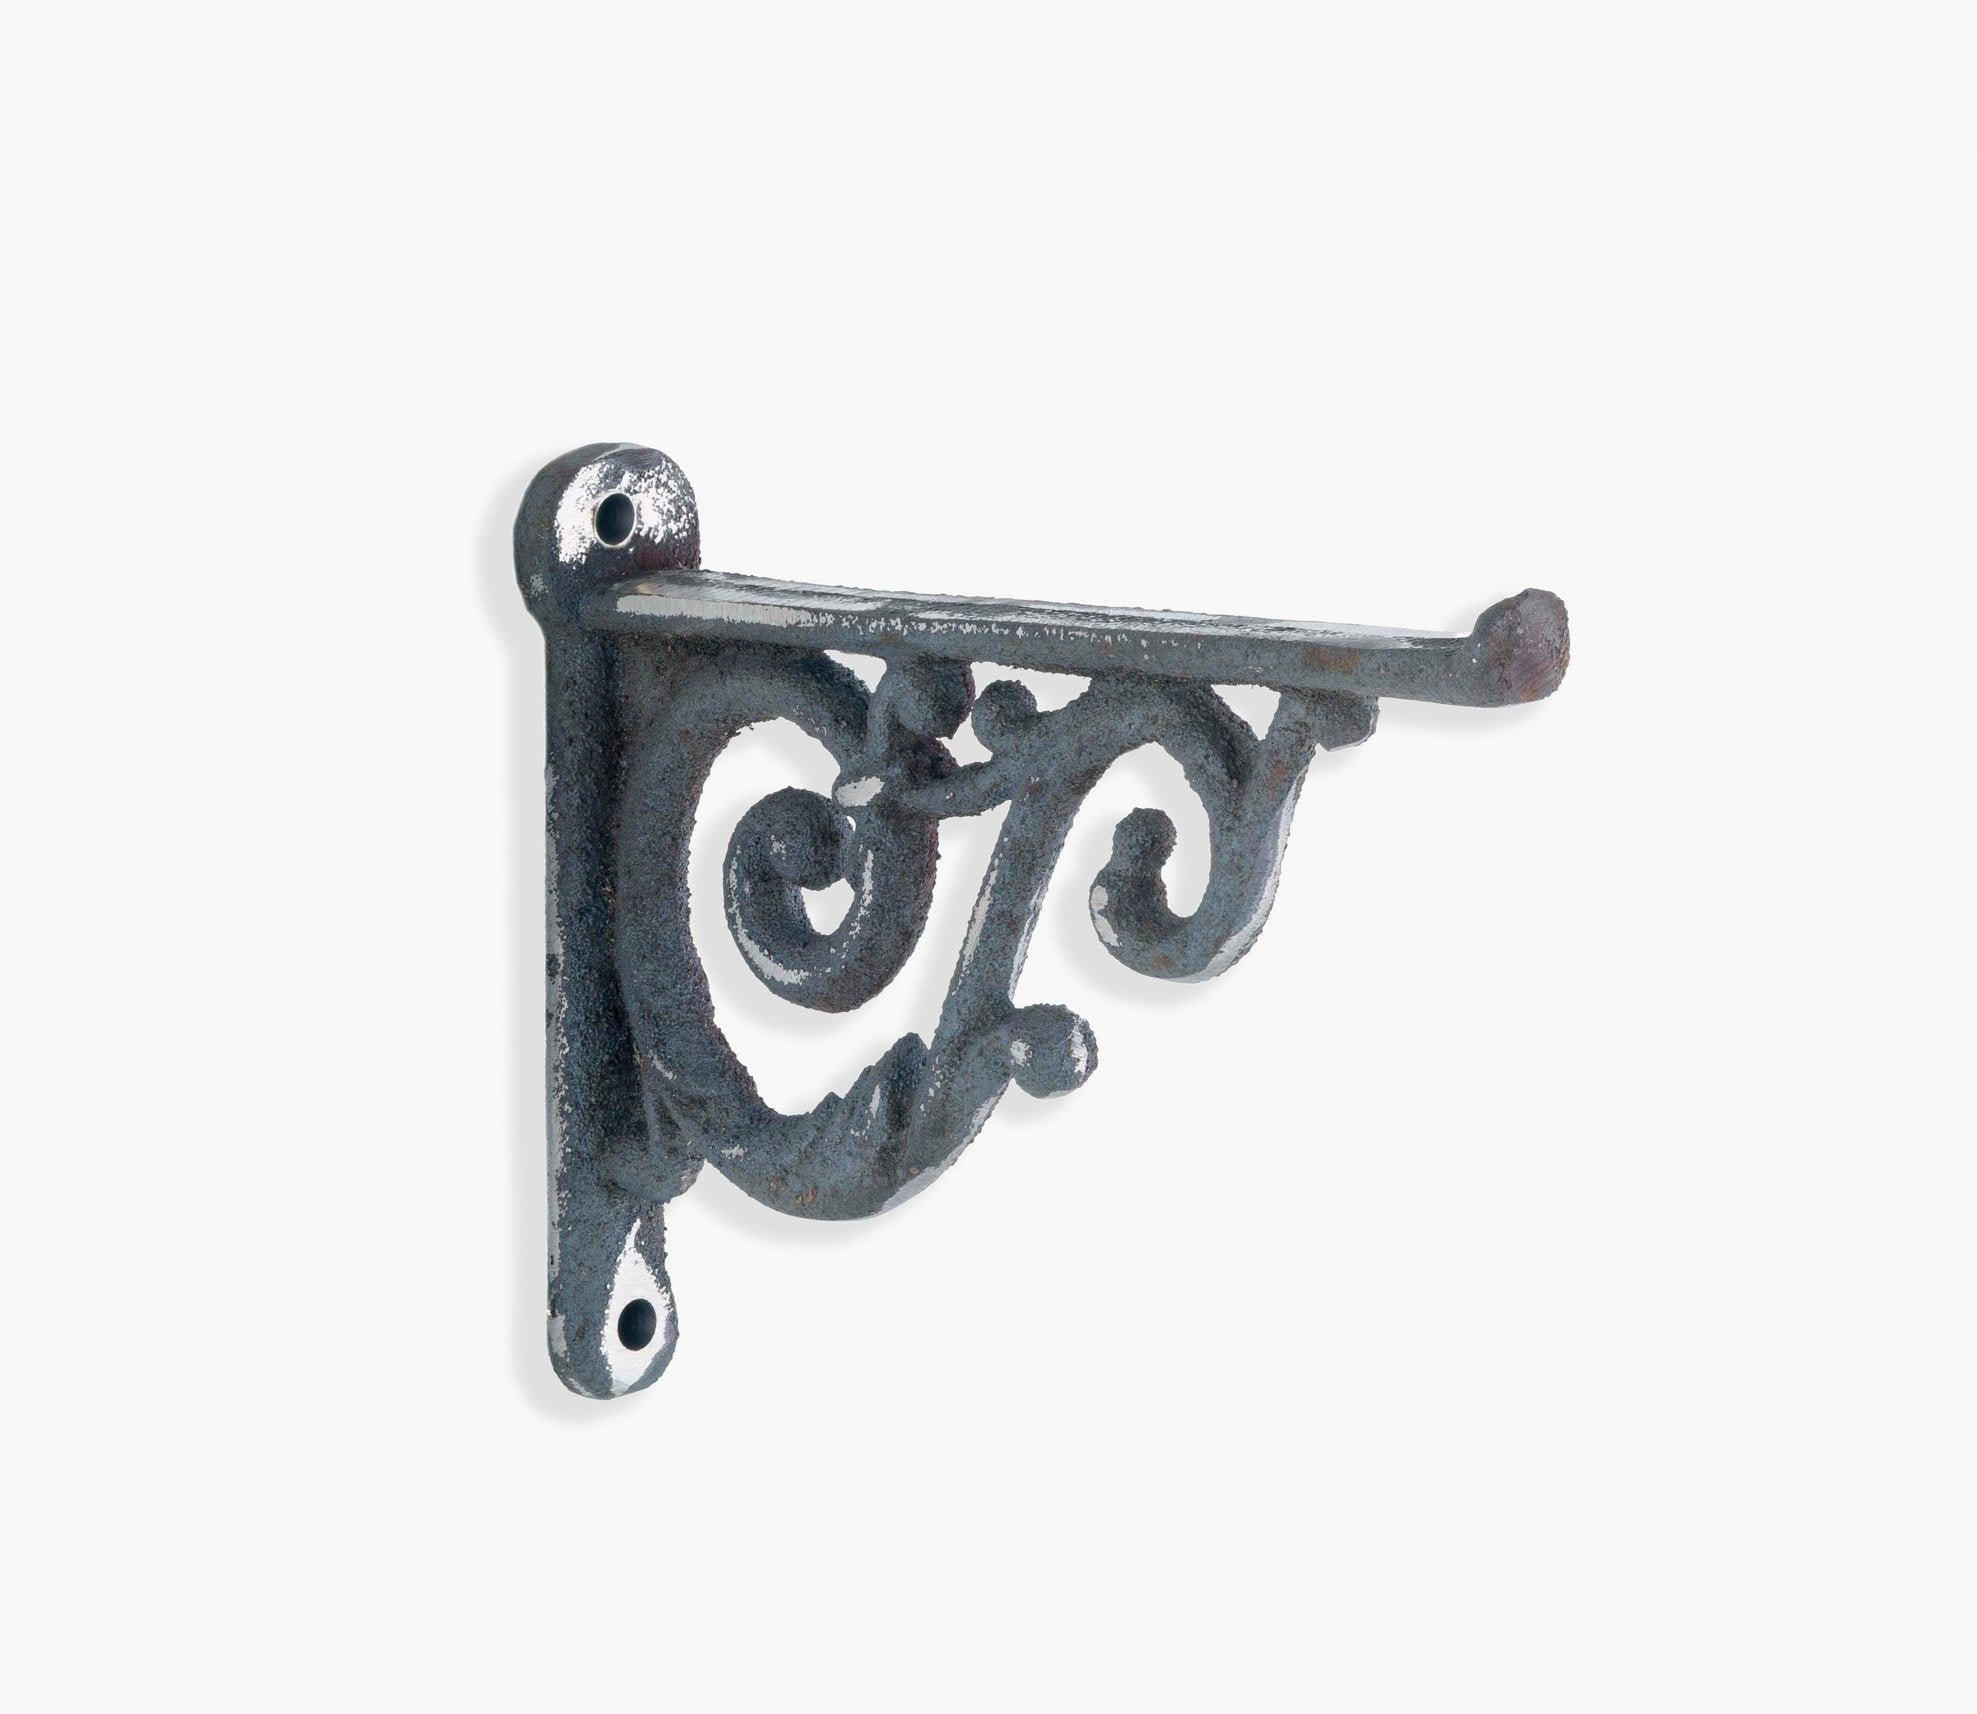 Shelf Bracket 124 Product Image 1